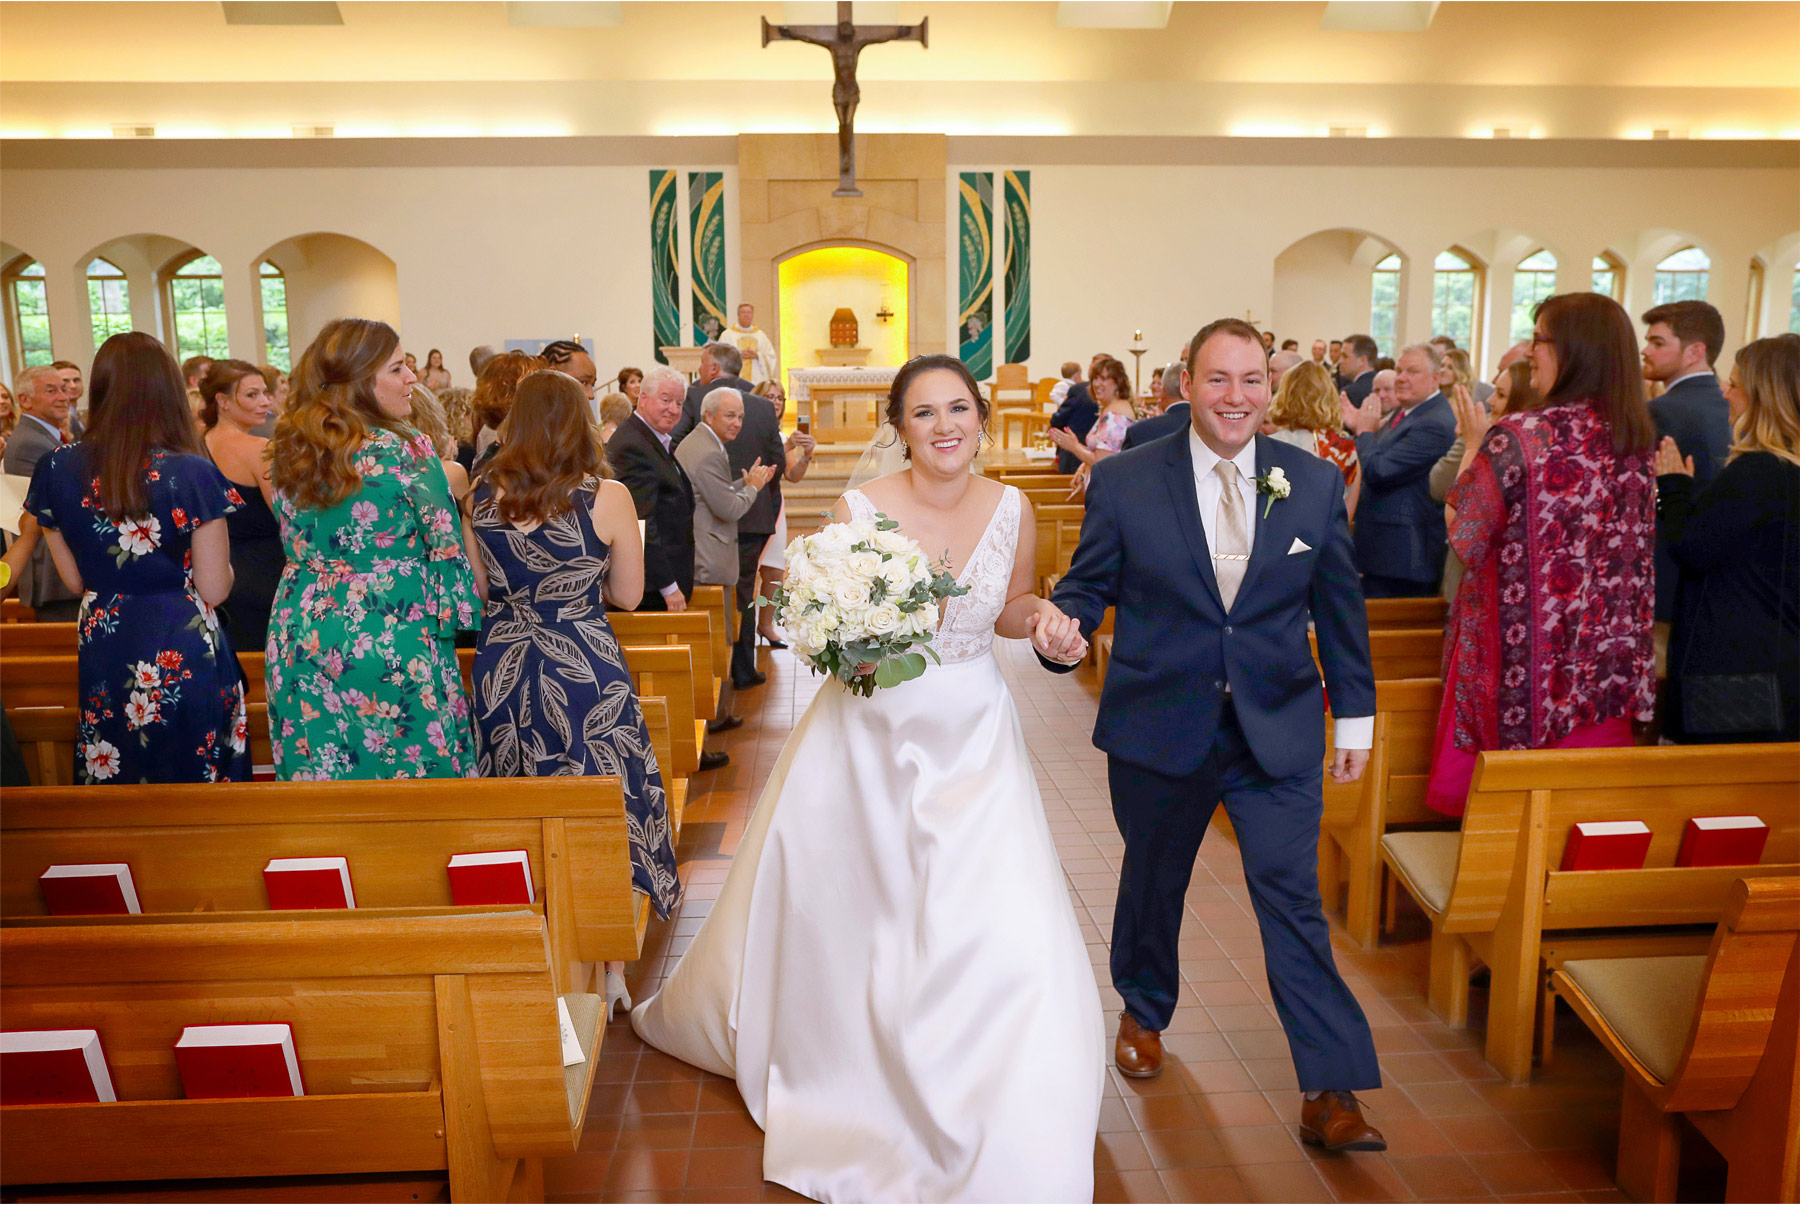 15-Vick-Photography-Wedding-Minneapolis-Minnesota-Our-Lady-of-Grace-Catholic-Church-Ceremony-Erin-and-David.jpg